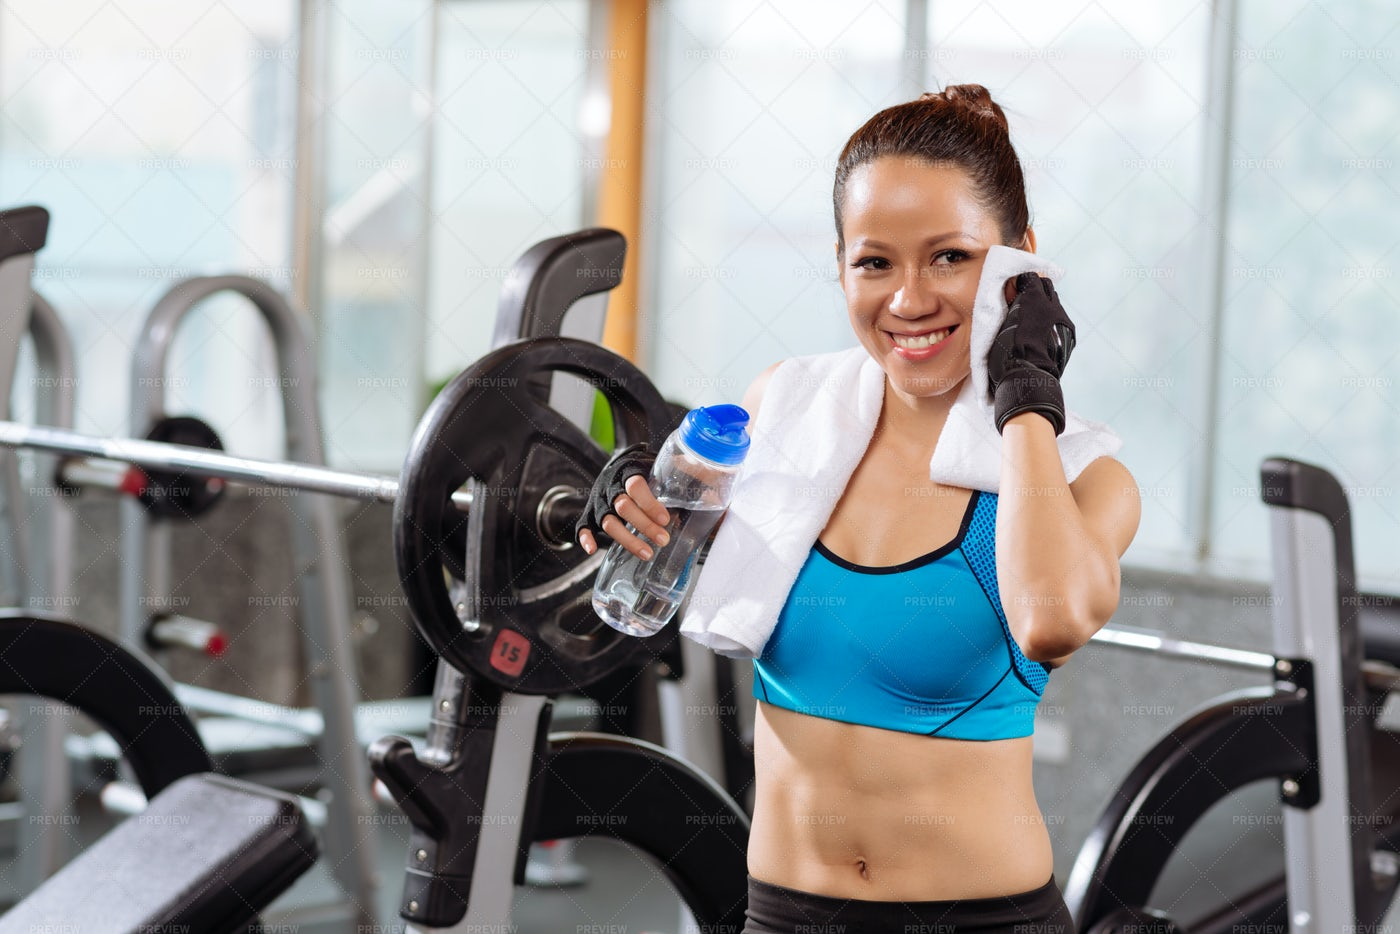 Wiping Out Sweat: Stock Photos